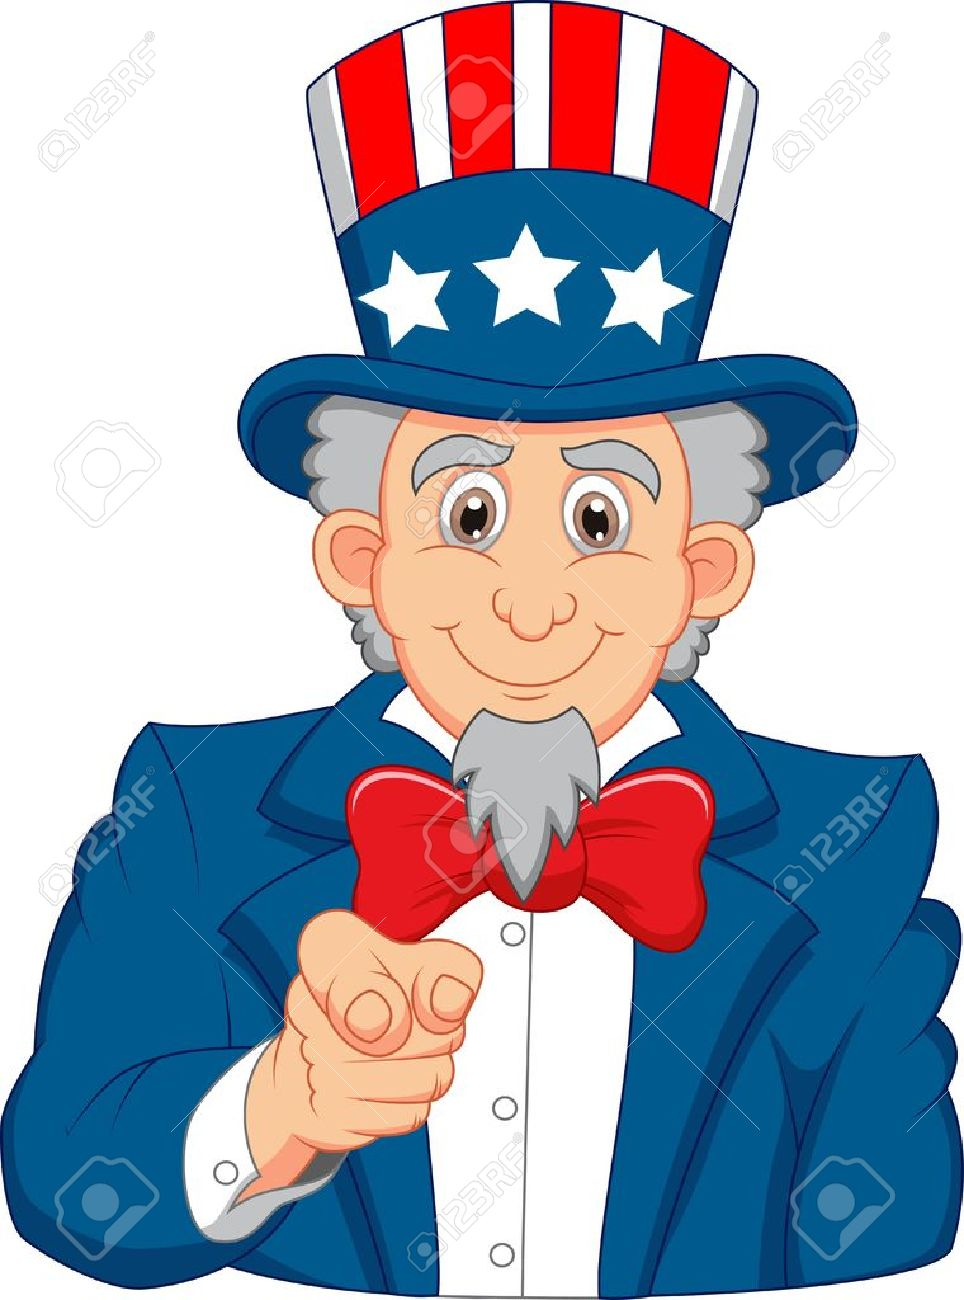 uncle sam cartoon wants you royalty free cliparts vectors and rh 123rf com uncle sam we need you clip art